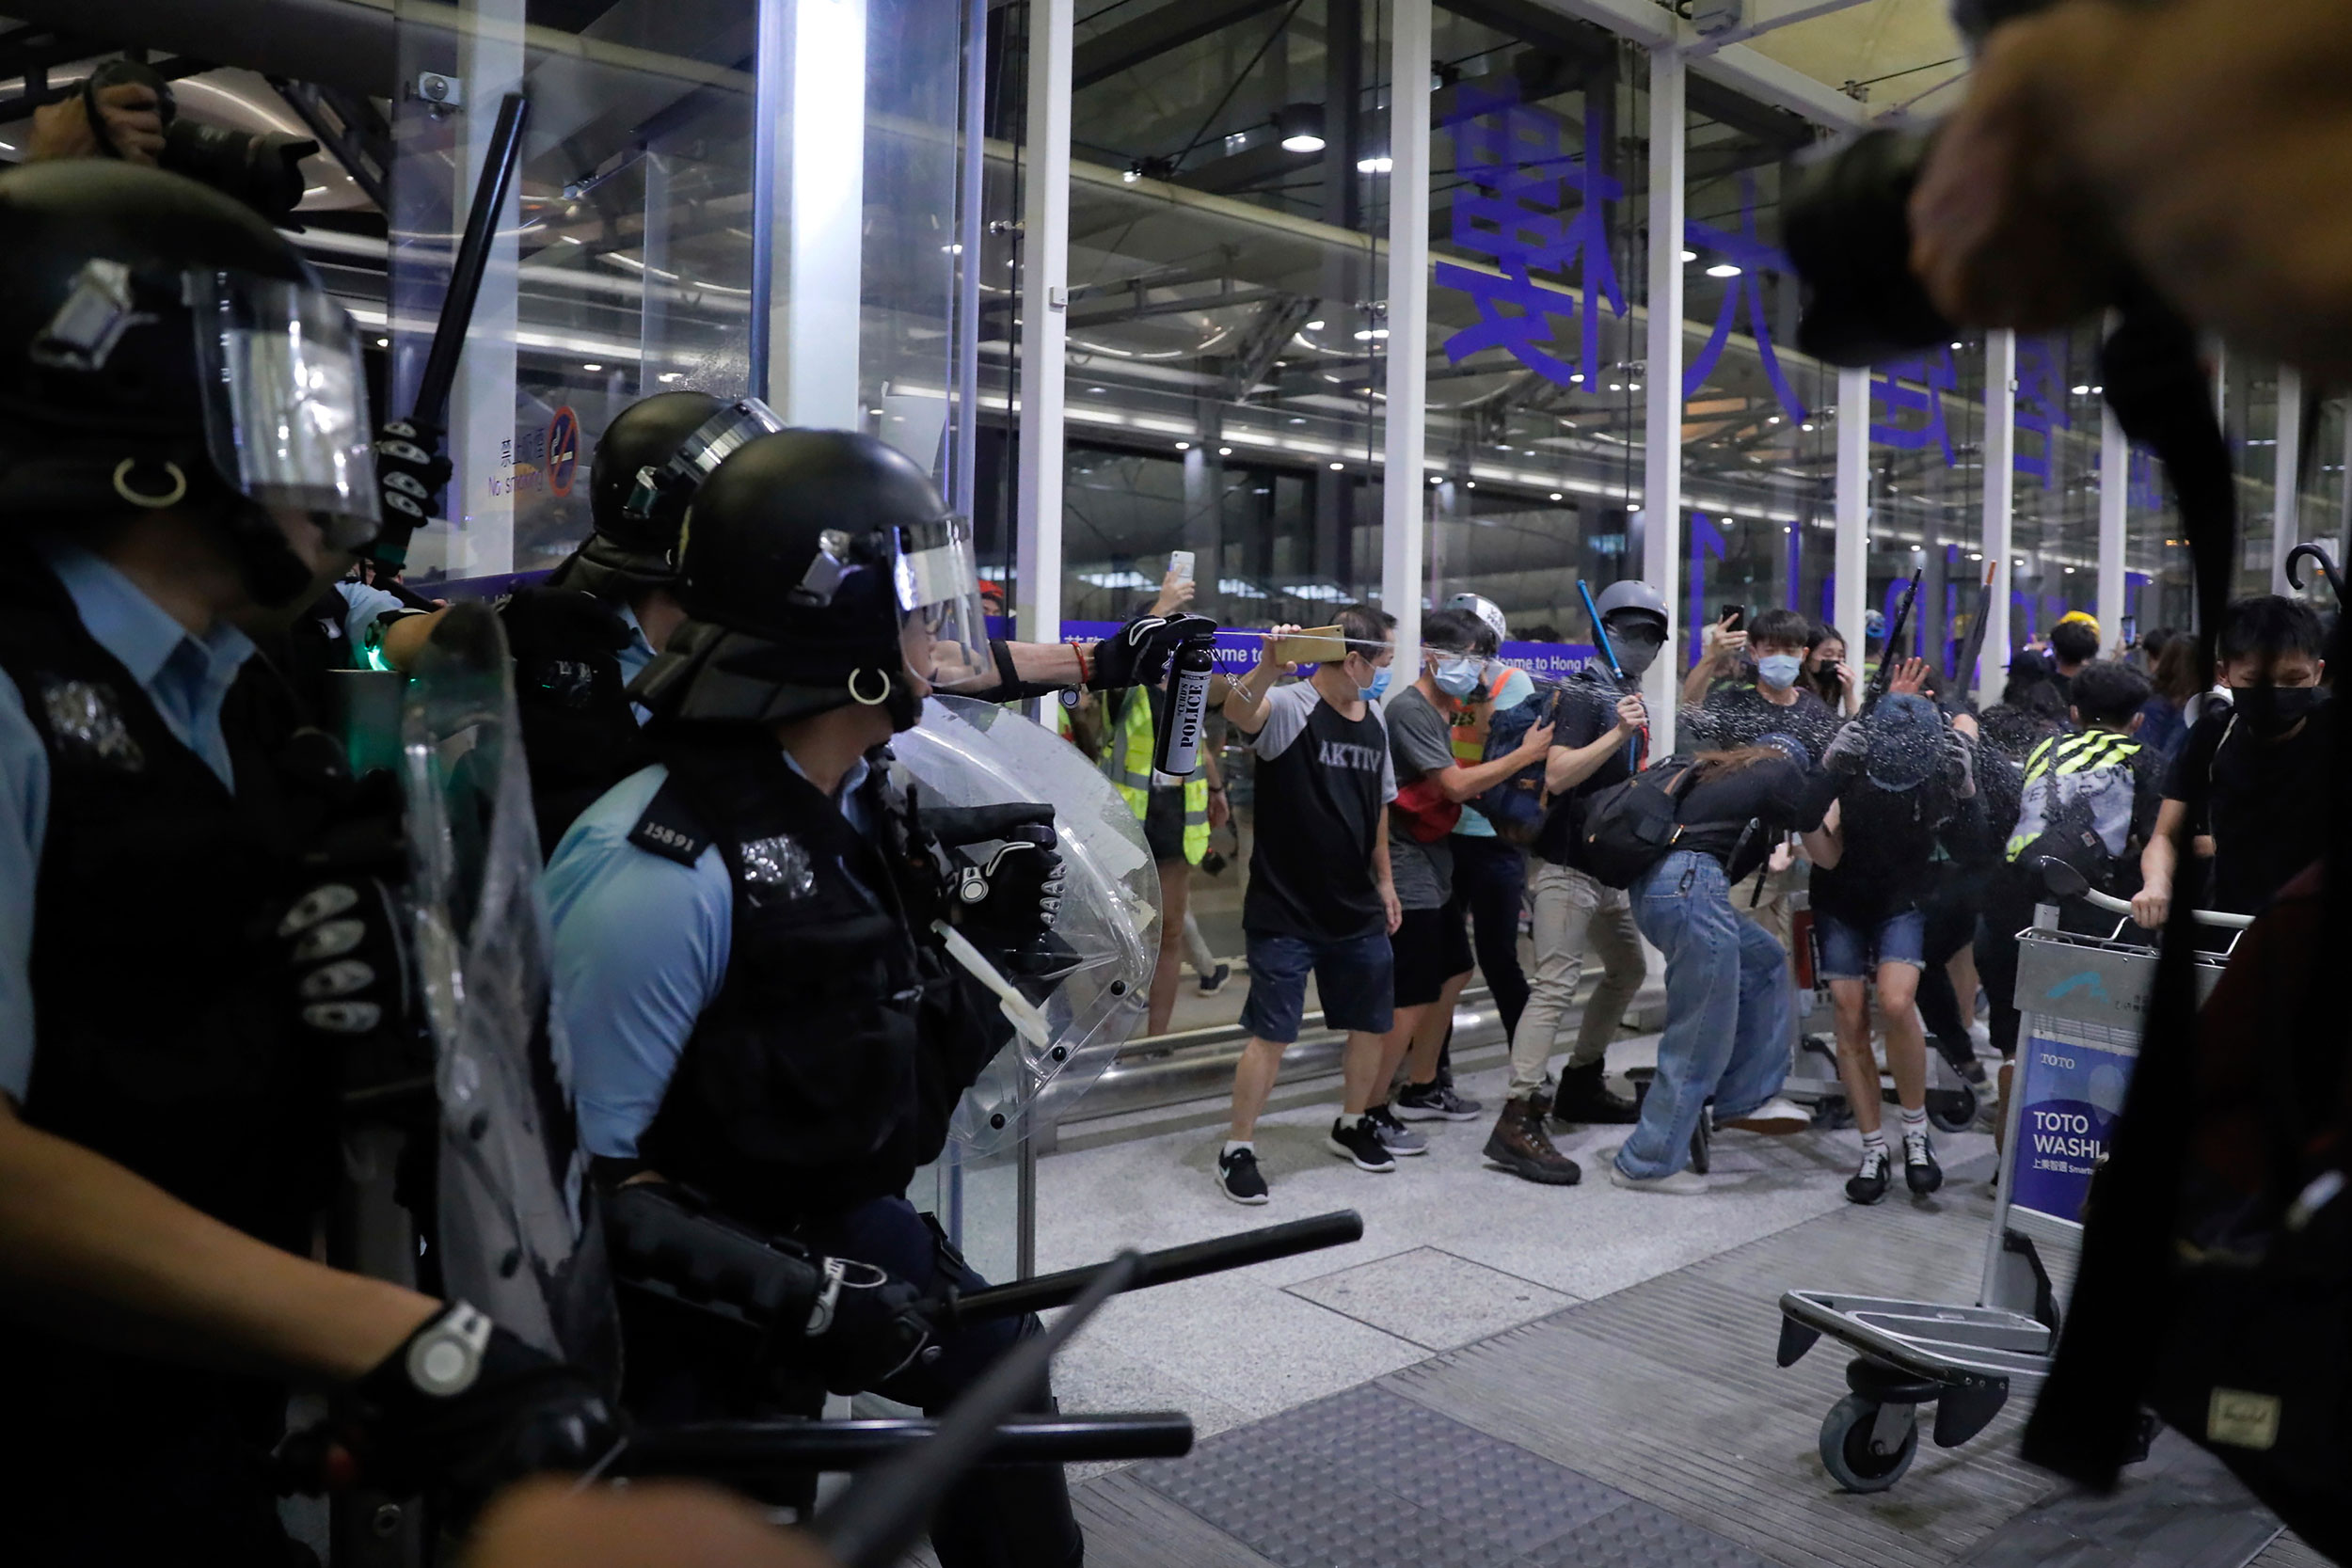 Police officers clash with anti-government protesters at the airport in Hong Kong on Tuesday.